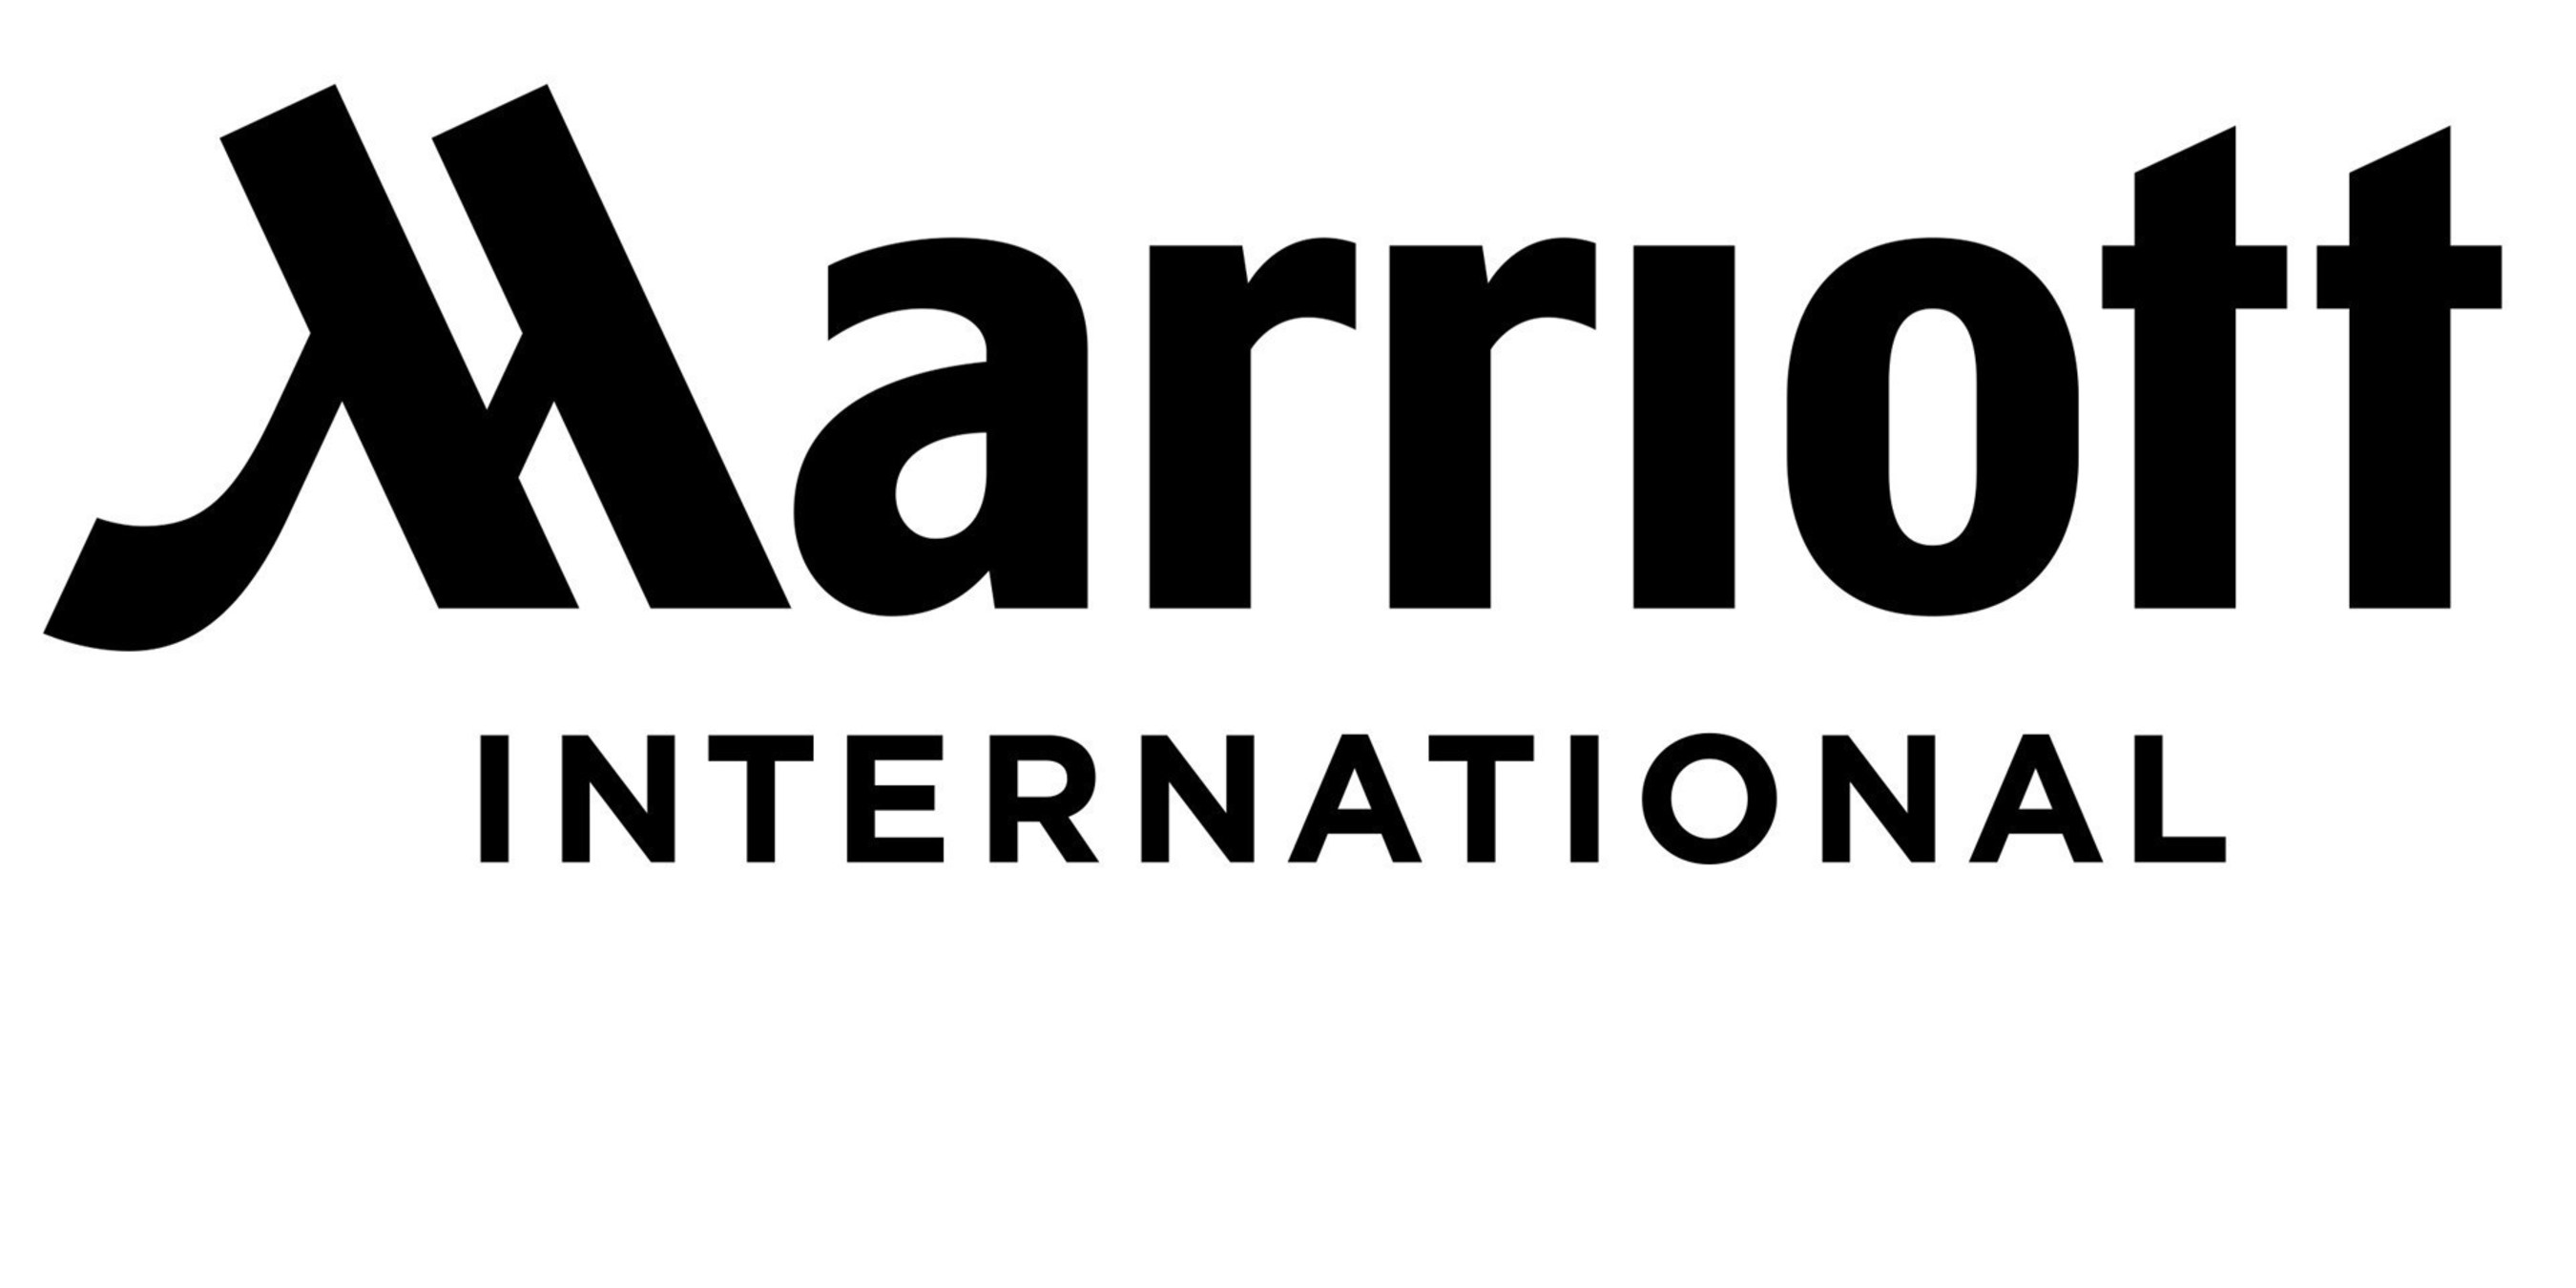 Marriott International Completes Acquisition Of Starwood Hotels Resorts Worldwide Creating World S Largest And Best Hotel Company While Providing